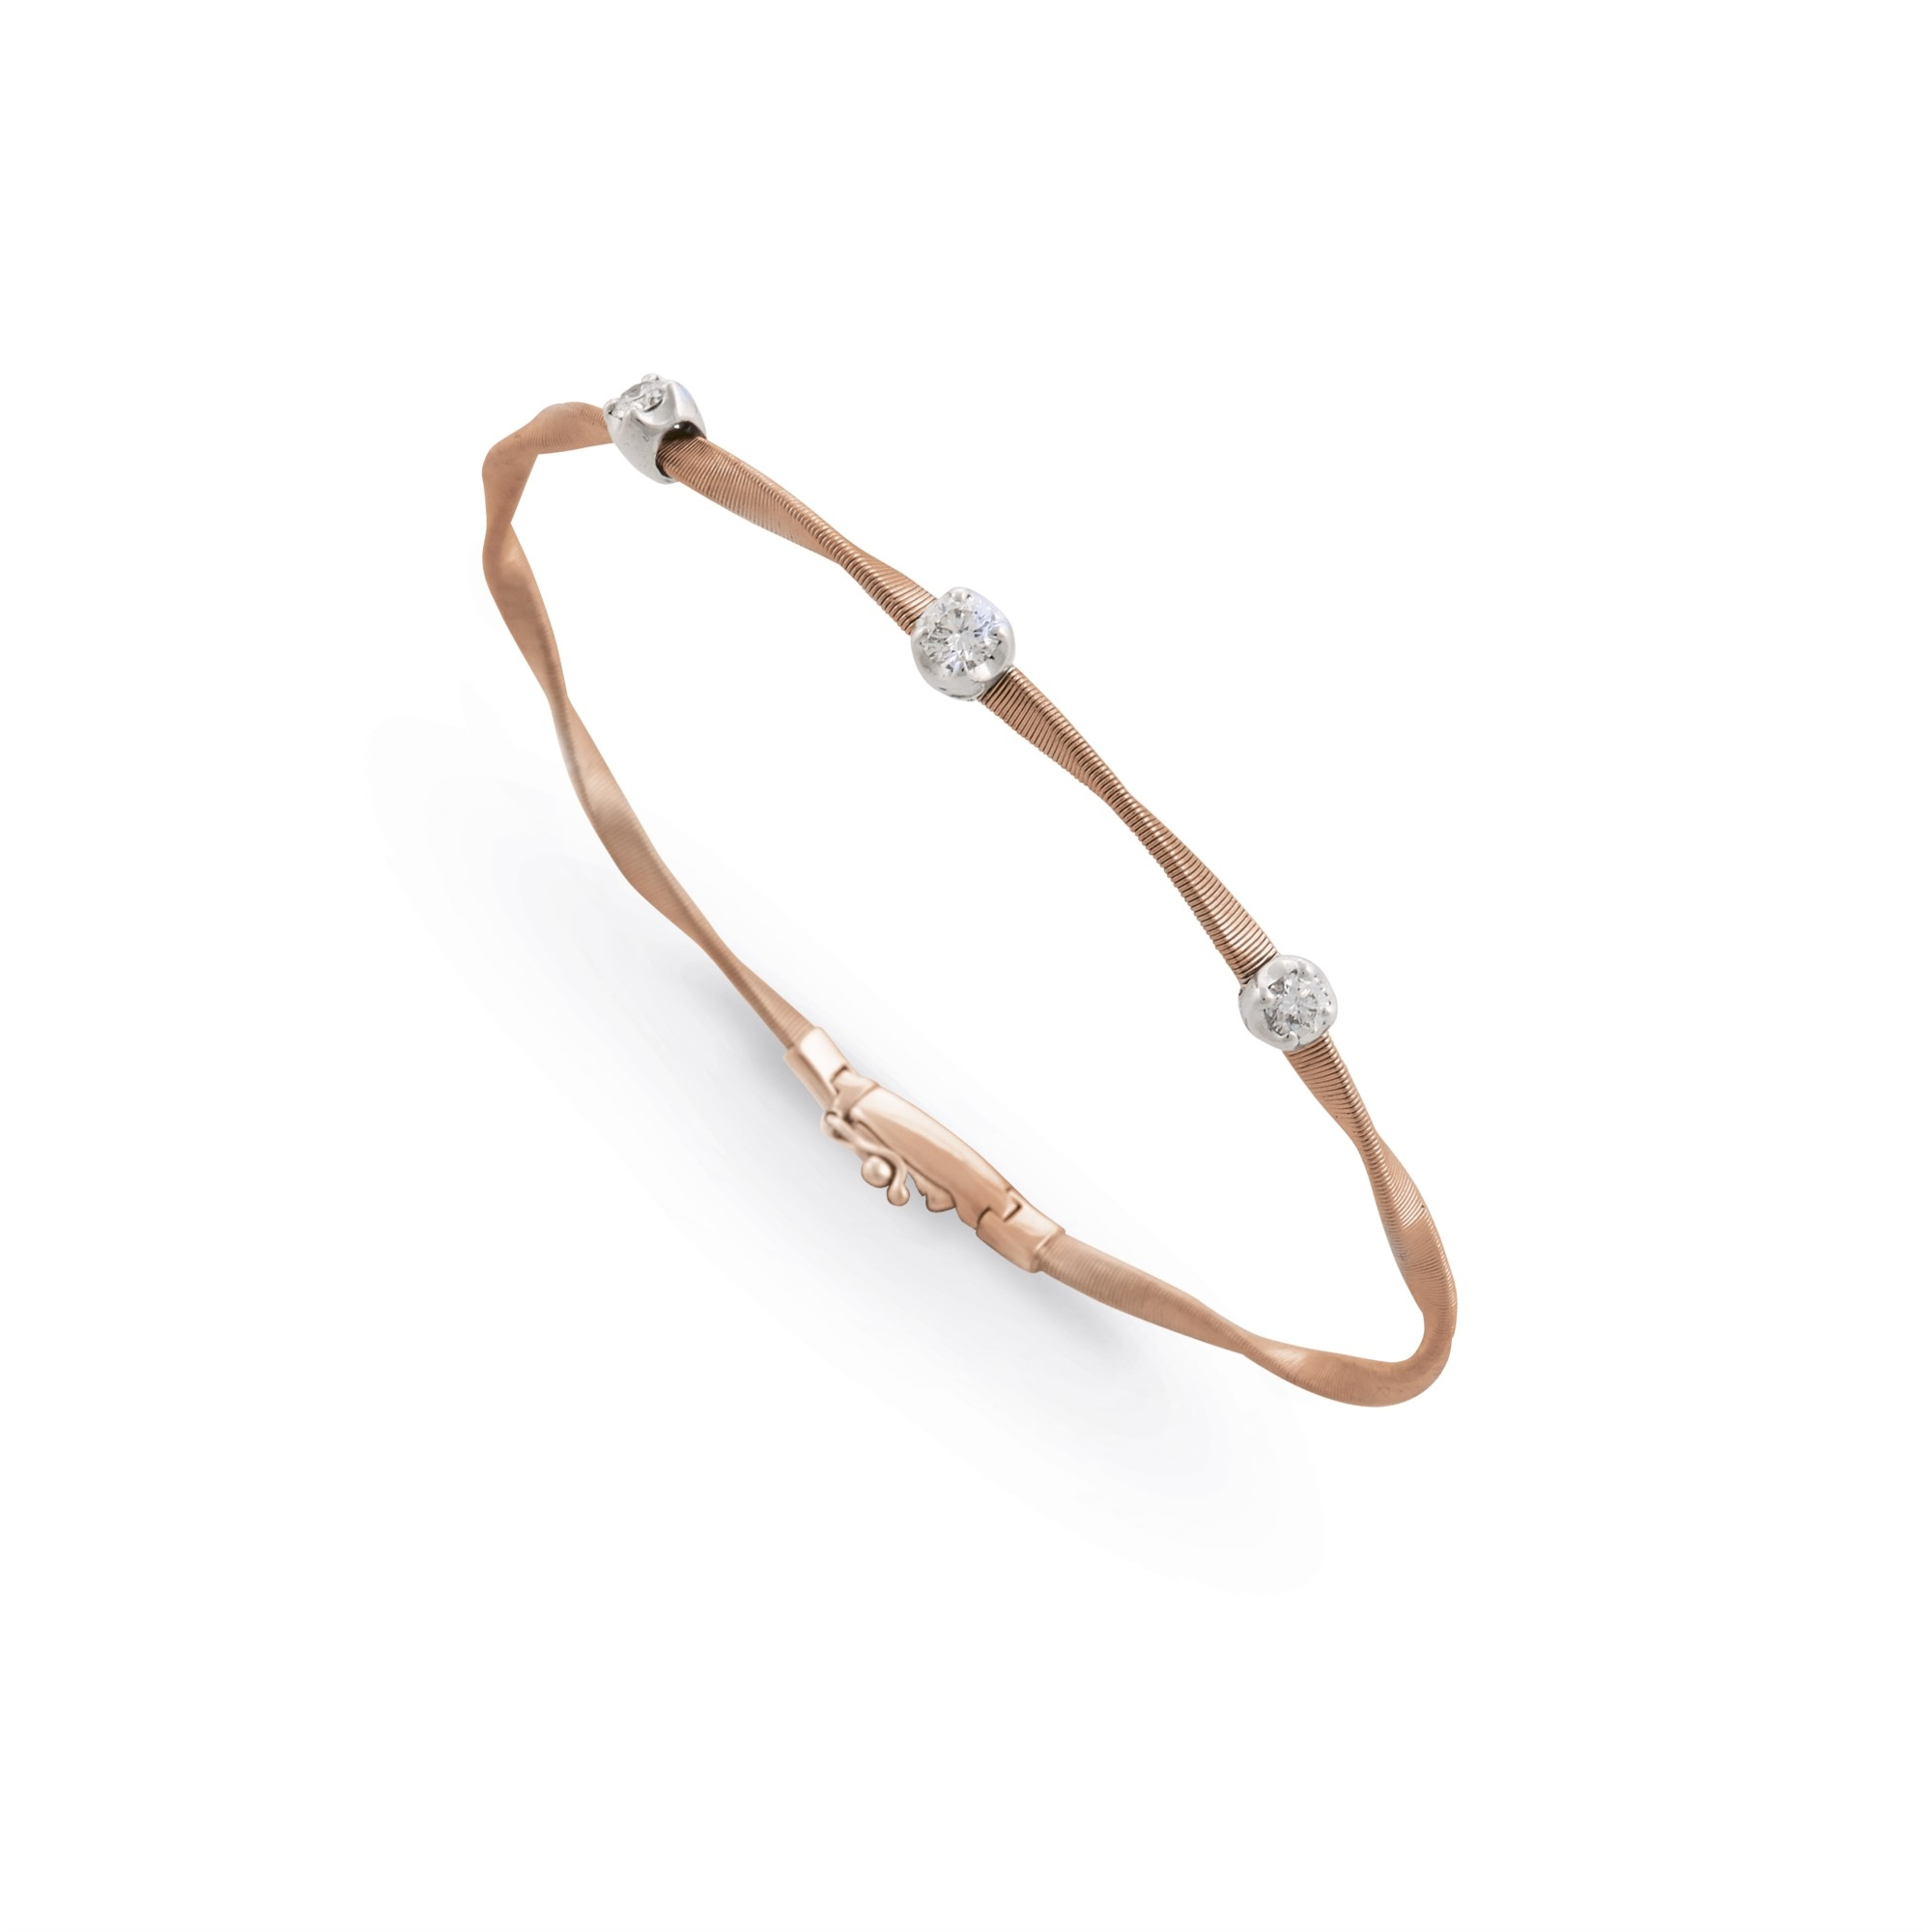 Marco Bicego 18K Rose Gold .15cts  Diamond Gold Bangle with Stones BG337 B WR